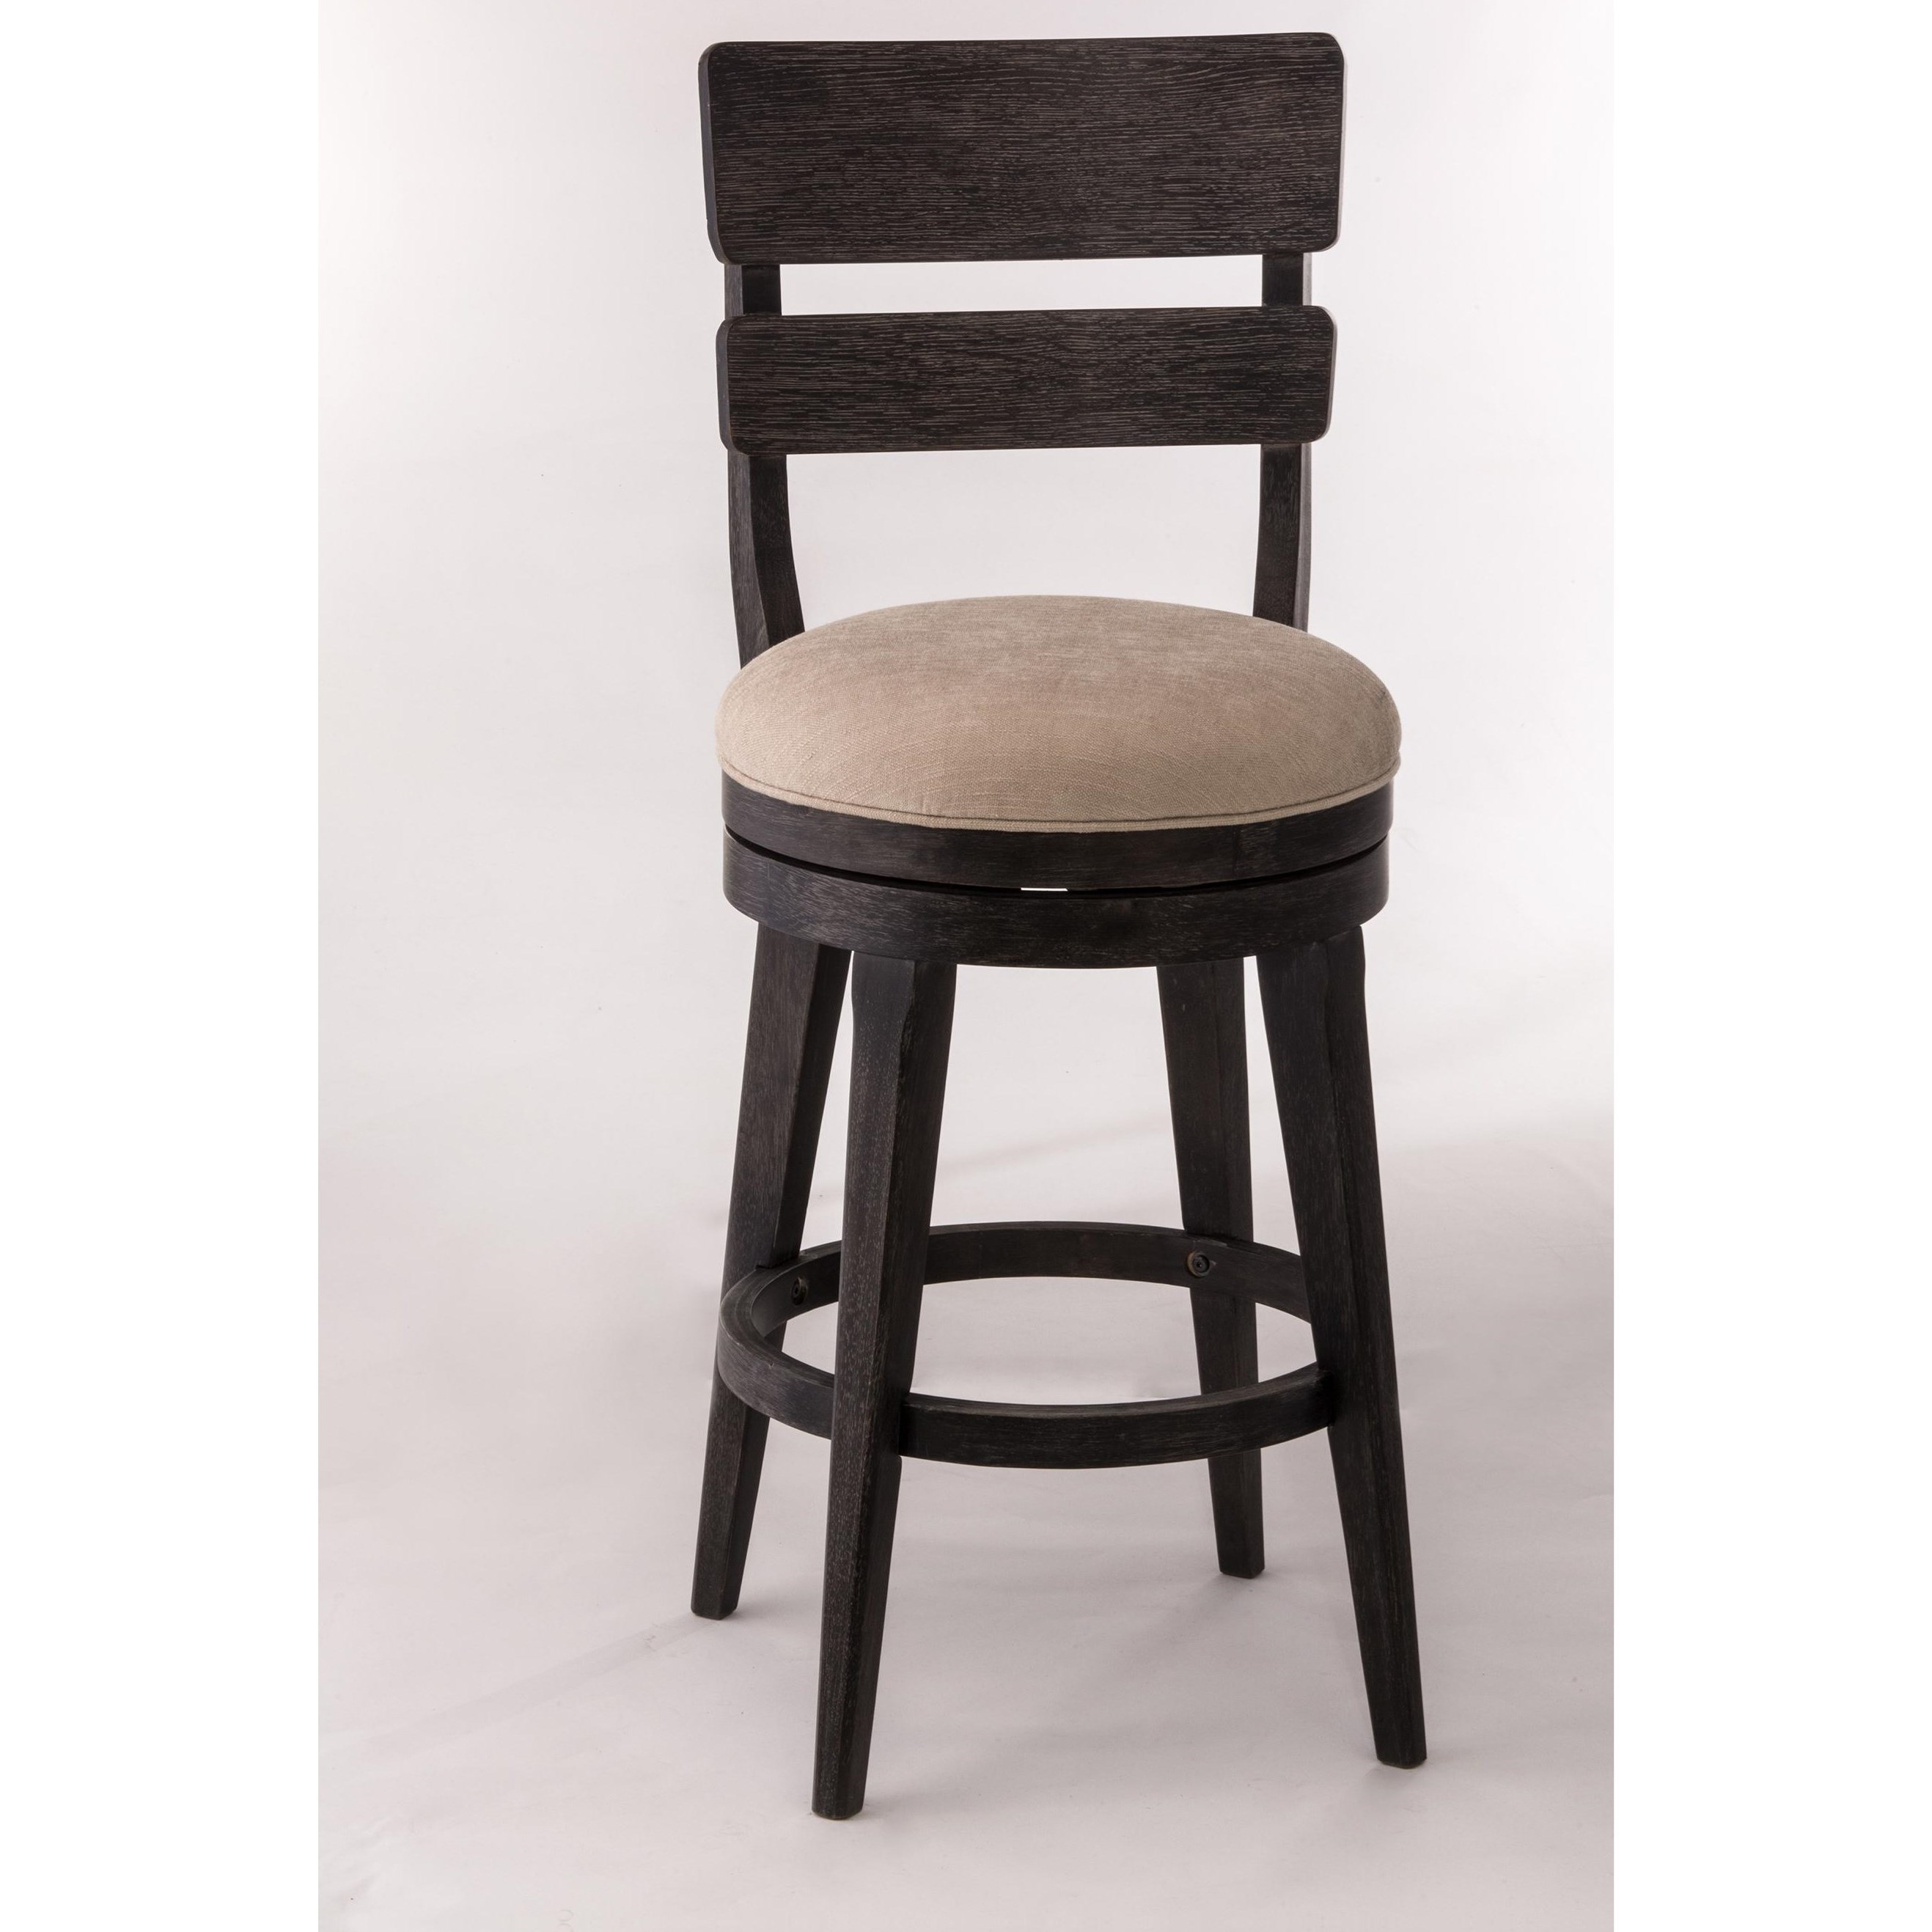 Hillsdale Wood Stools Upholstered Swivel Counter Stool